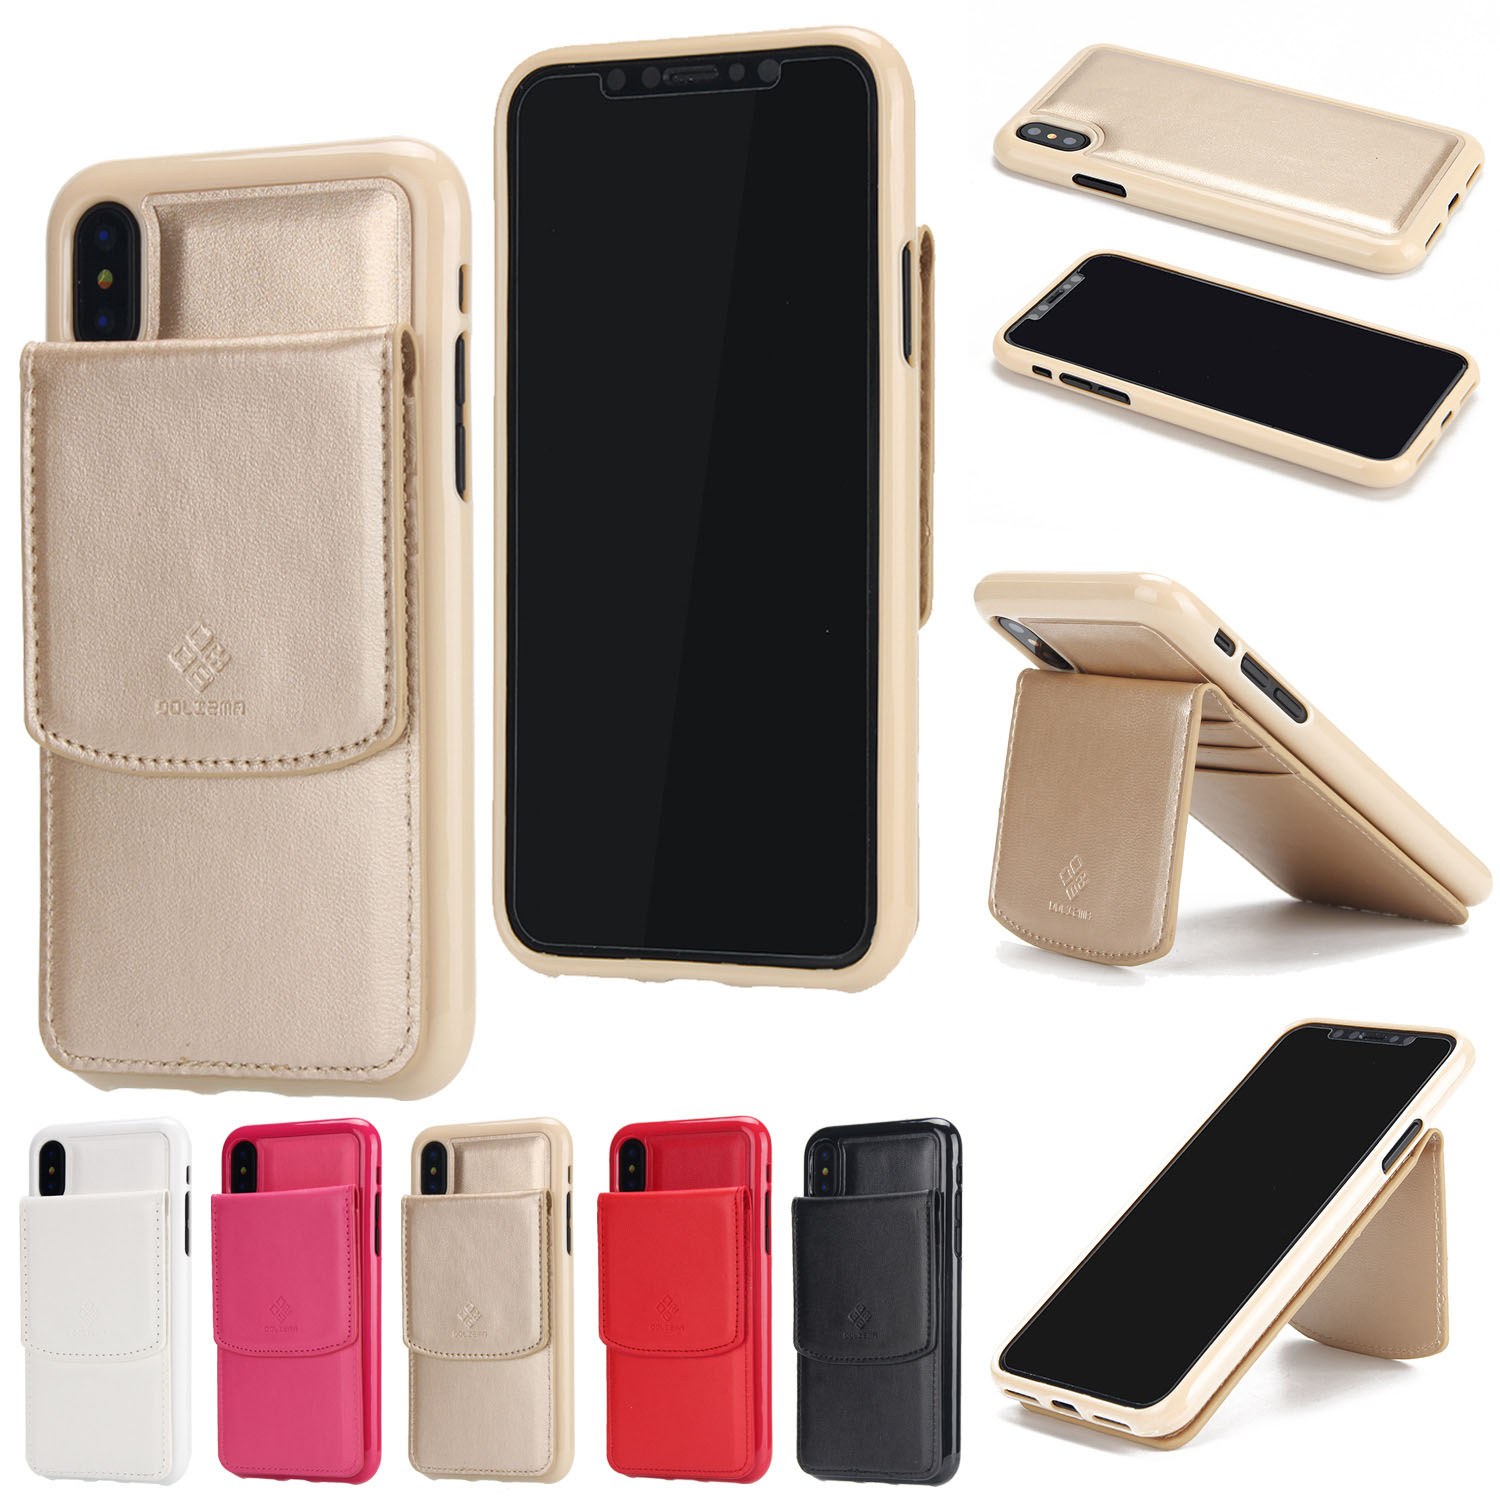 Best selling items mobile phone case for iphone, 2 in 1 wallet leather case for iPhone X